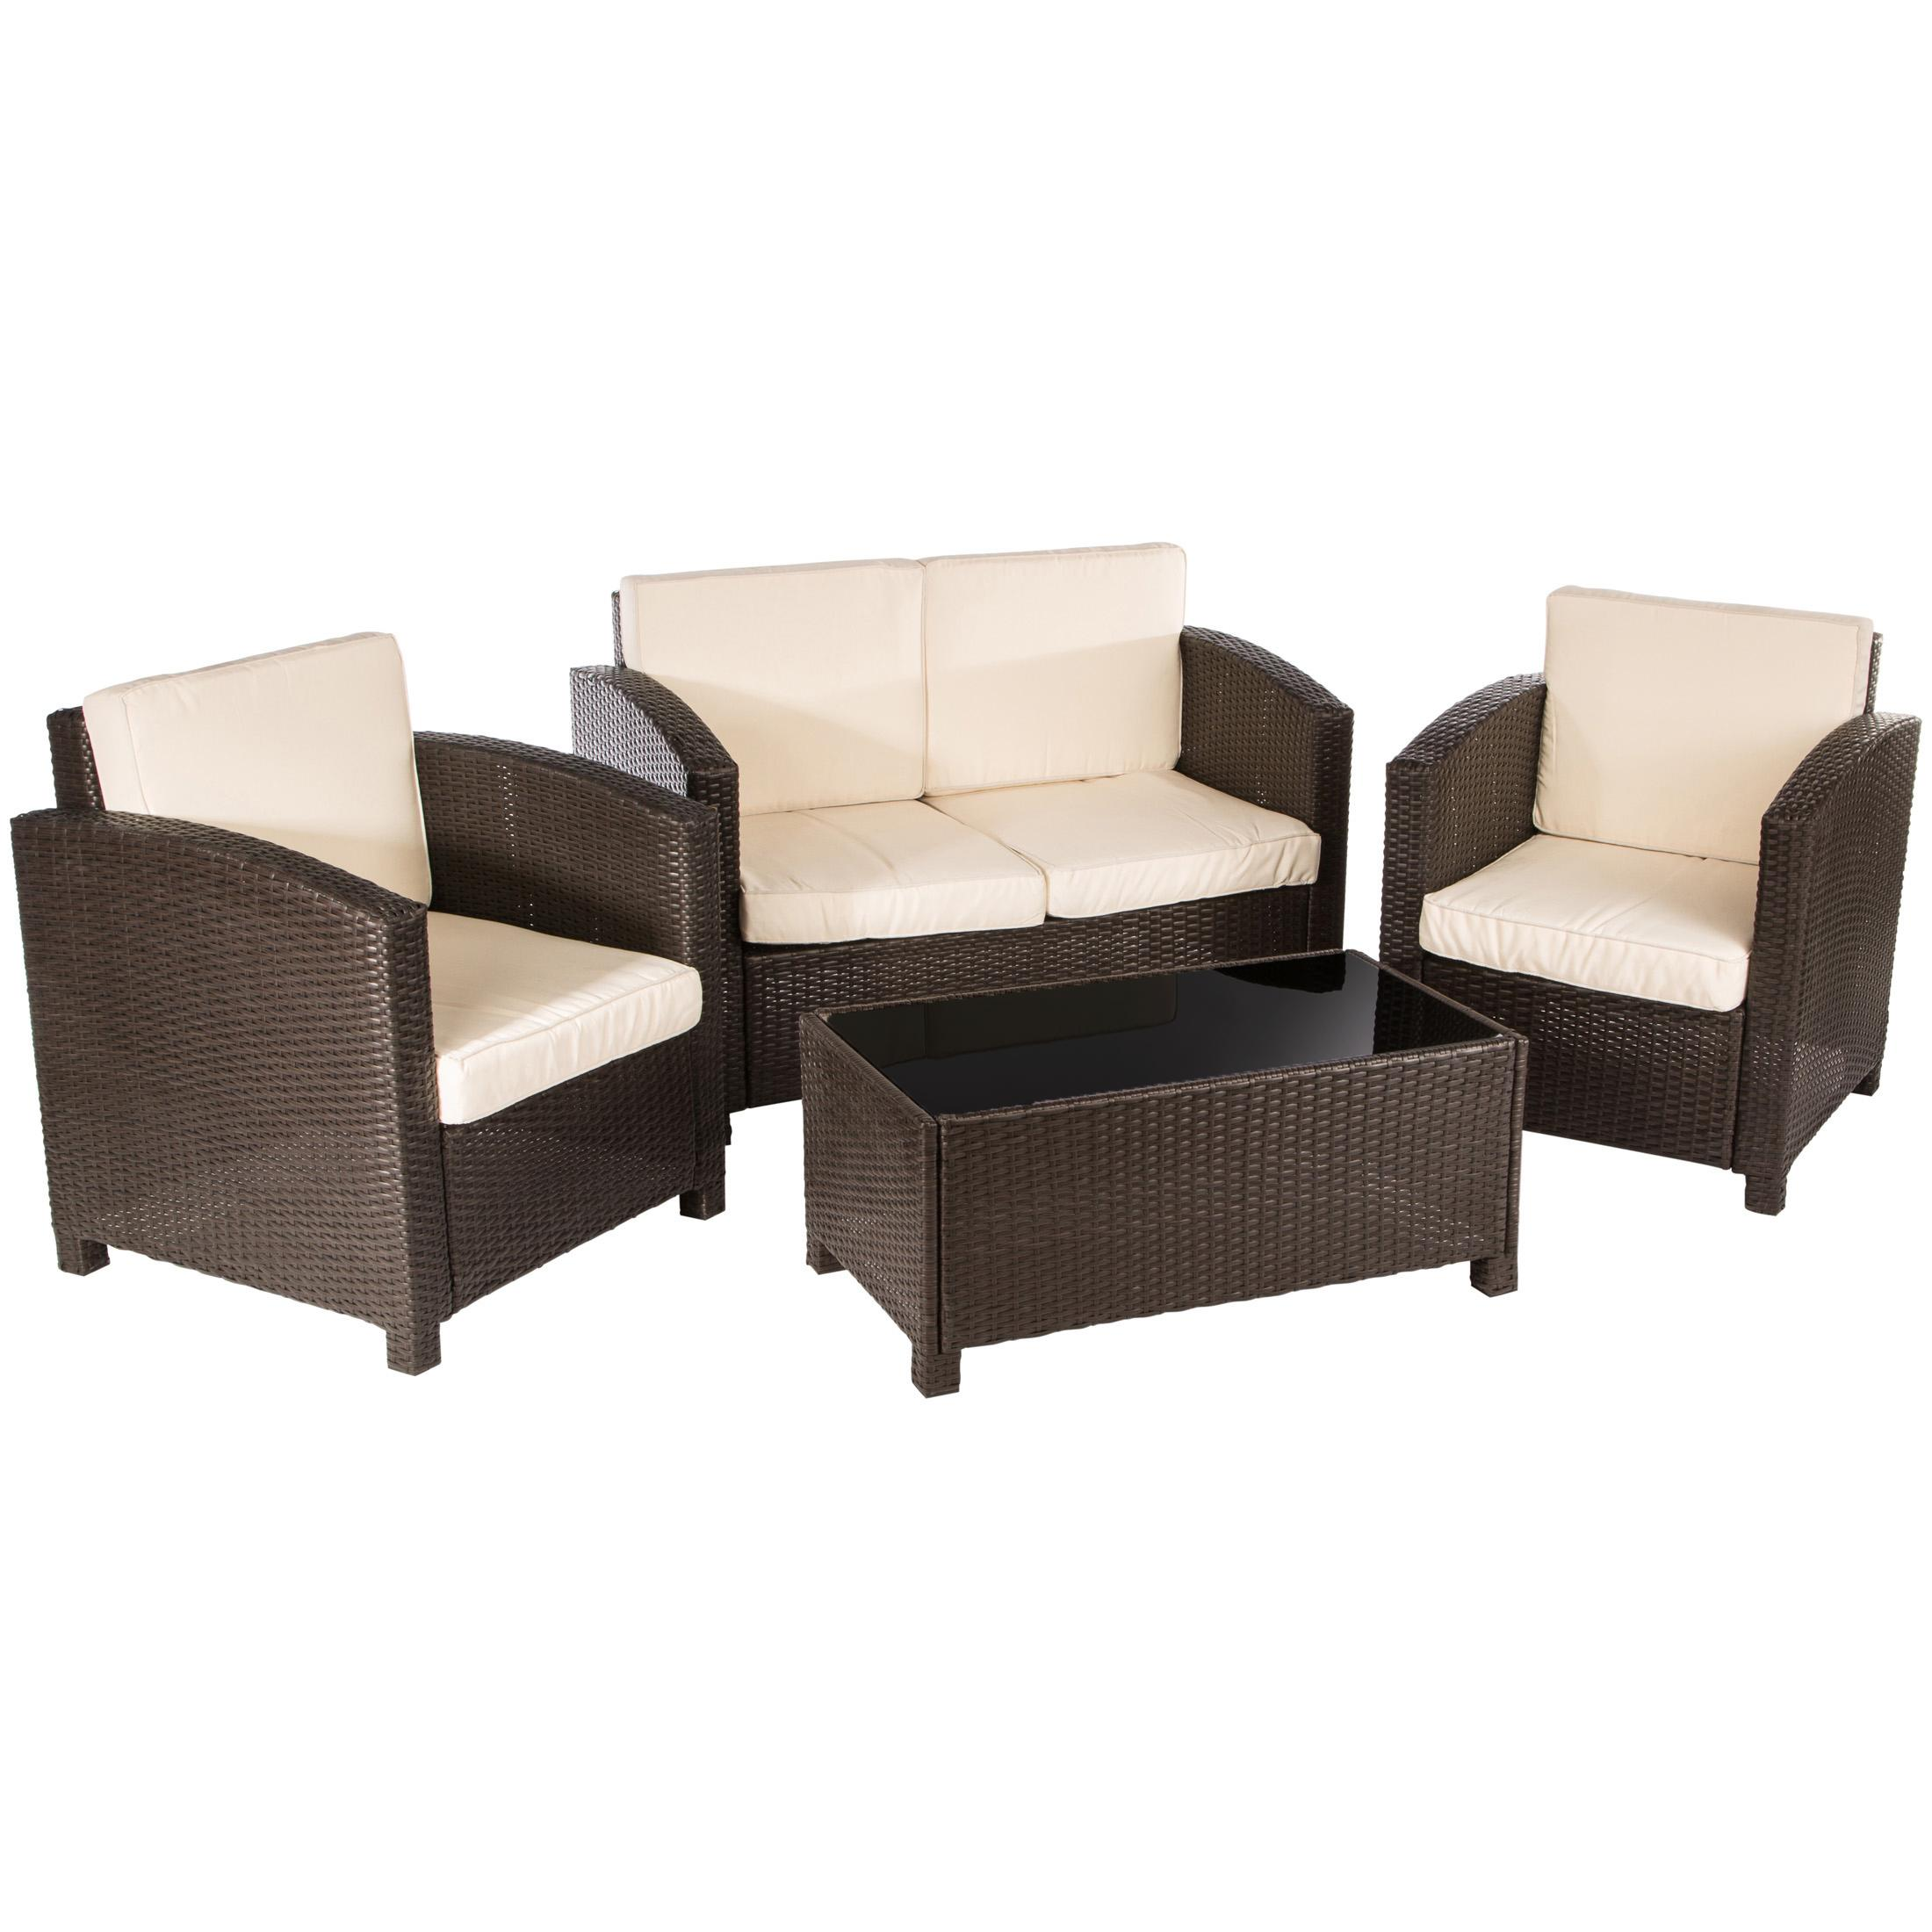 ultranatura poly rattan lounge sitzgruppe palma serie 4 teilig tisch couch 2. Black Bedroom Furniture Sets. Home Design Ideas